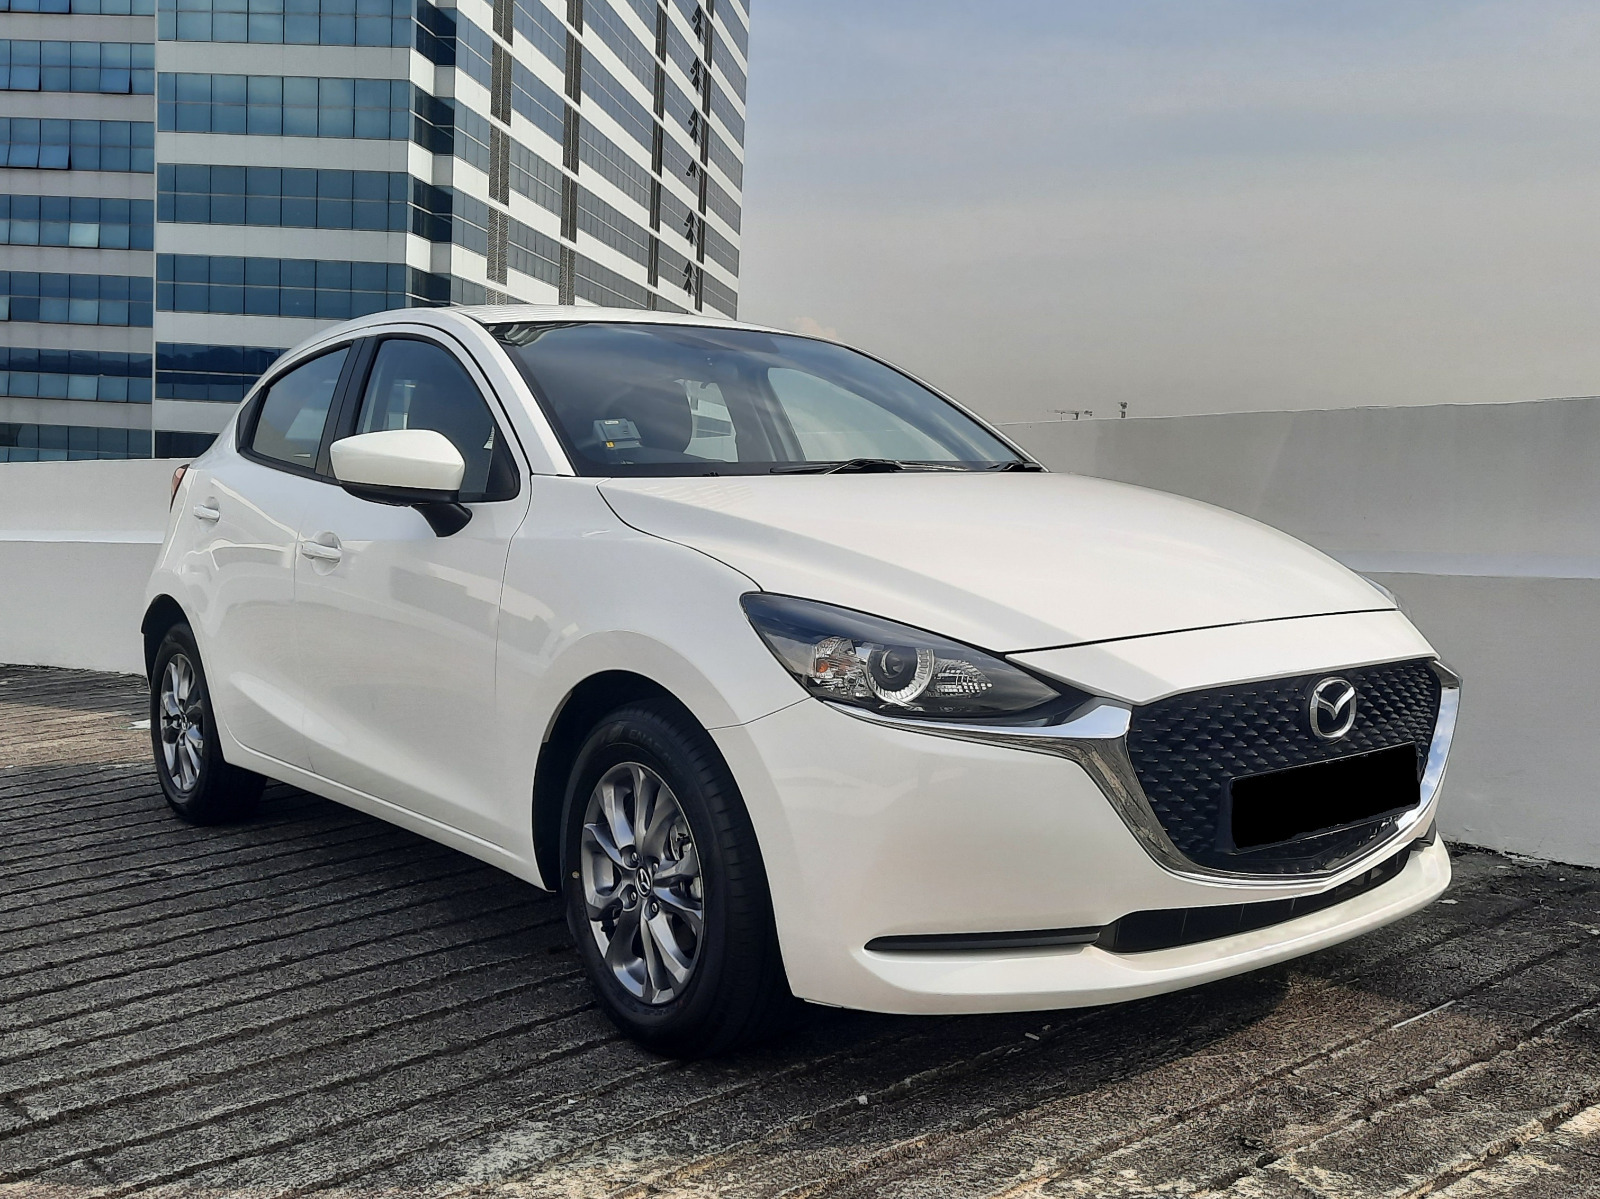 Mazda 2 Hatchback Facelift 1.5A Brand New (For Lease)